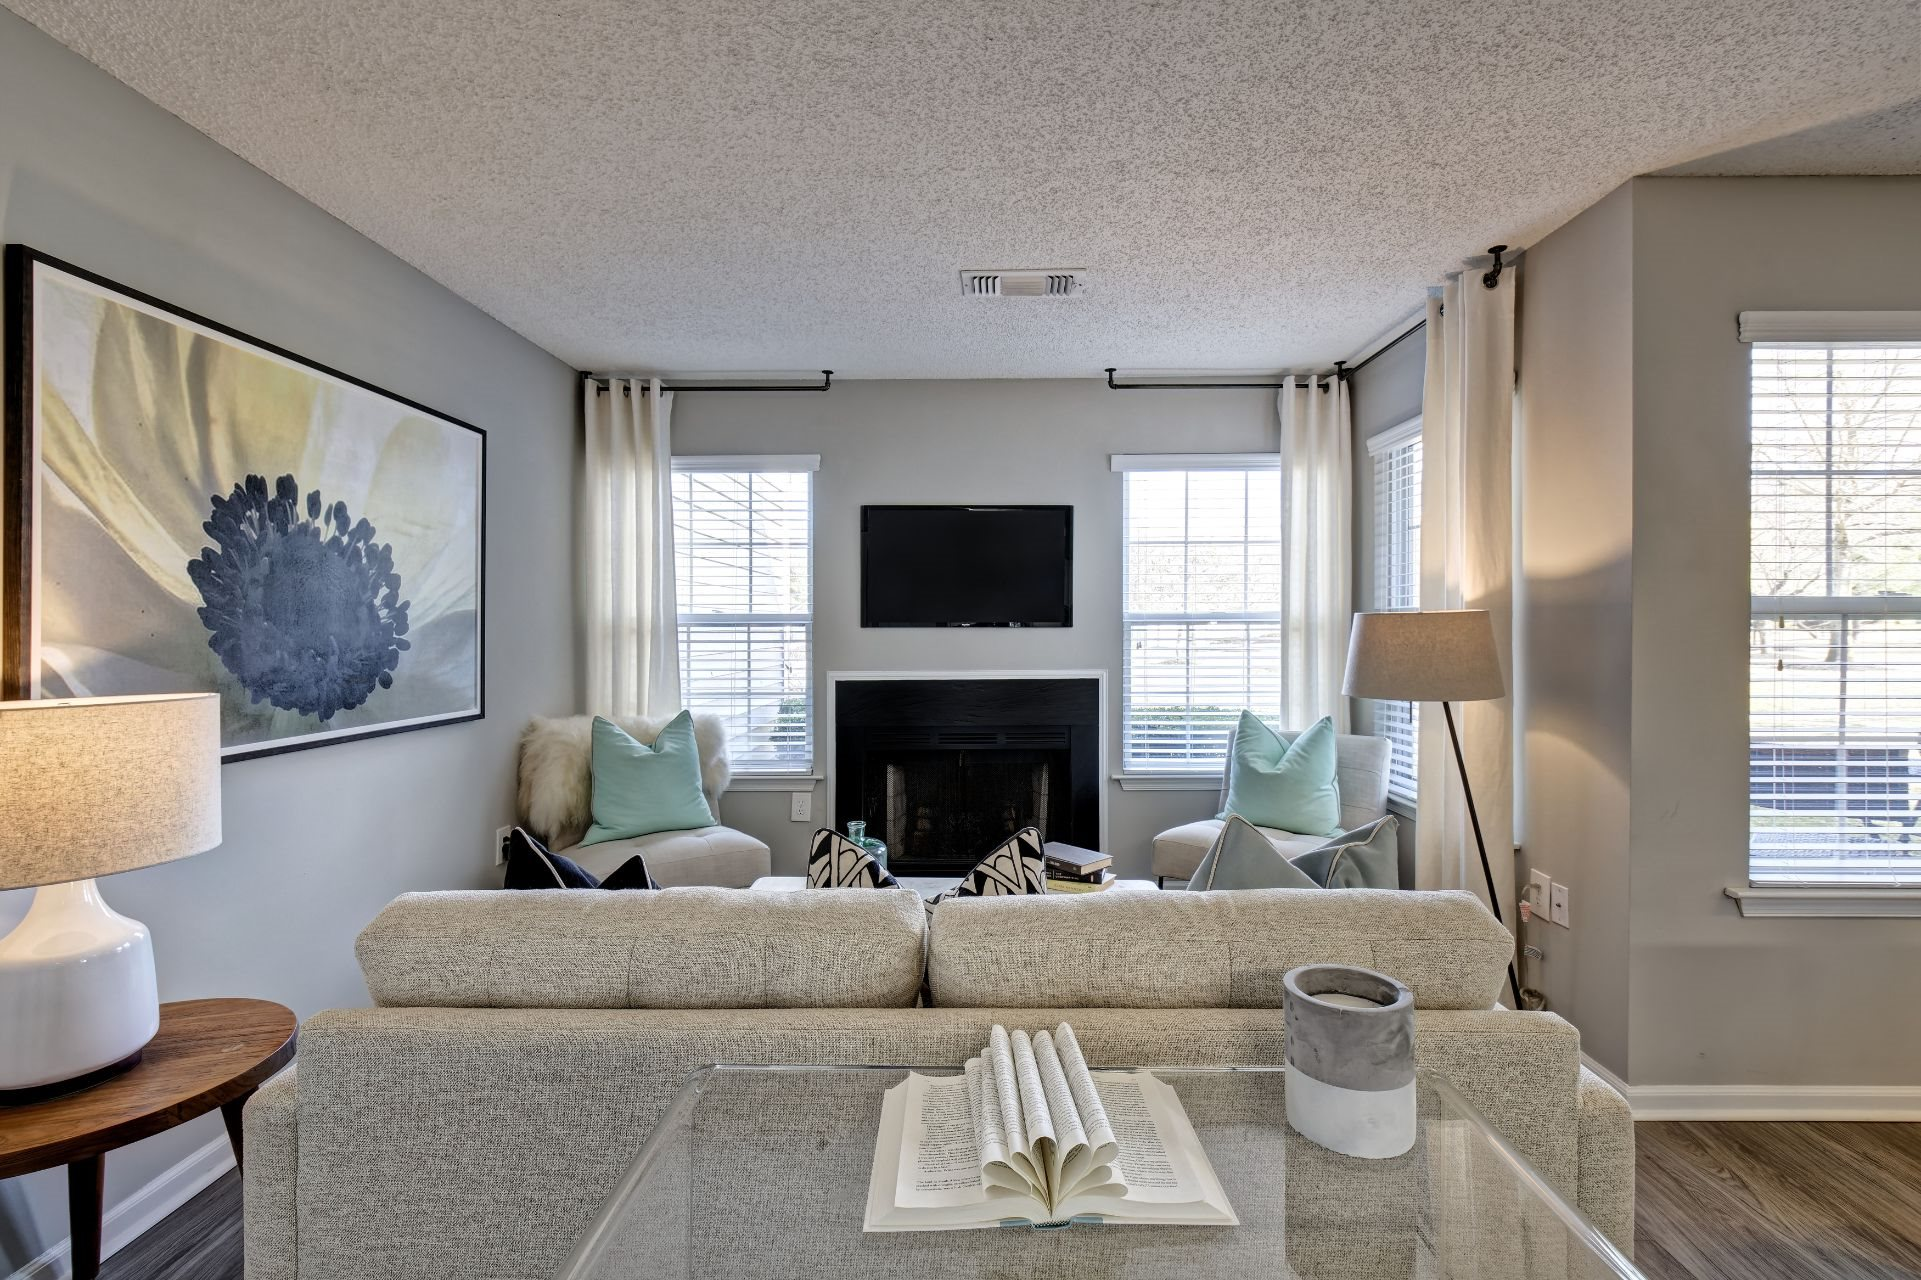 Newly Renovated 1, 2 and 3 Bedroom Luxury Apartments in Lawrenceville NJ with Open Concept Living, Wood-Burning Fireplaces, Chef's Kitchen, Stainless Appliances, Breakfast Bar, Washer Dryer -1000 Steward Crossing Way Lawrenceville NJ 08646